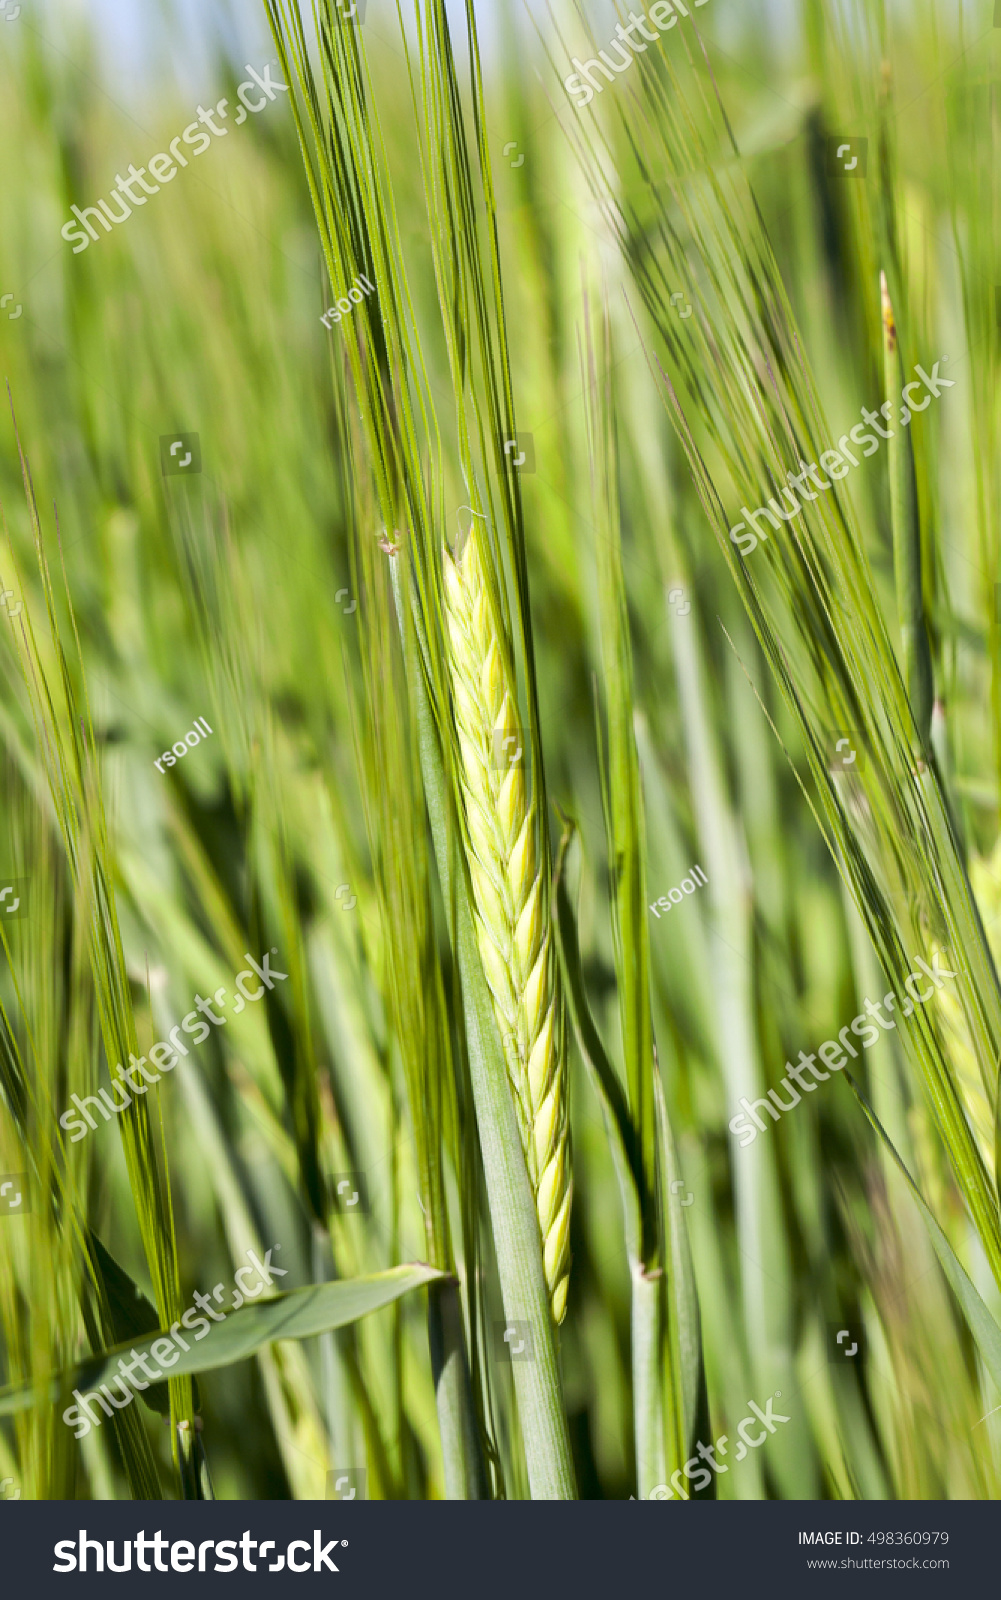 Agricultural field on which grow immature cereals, wheat. #498360979